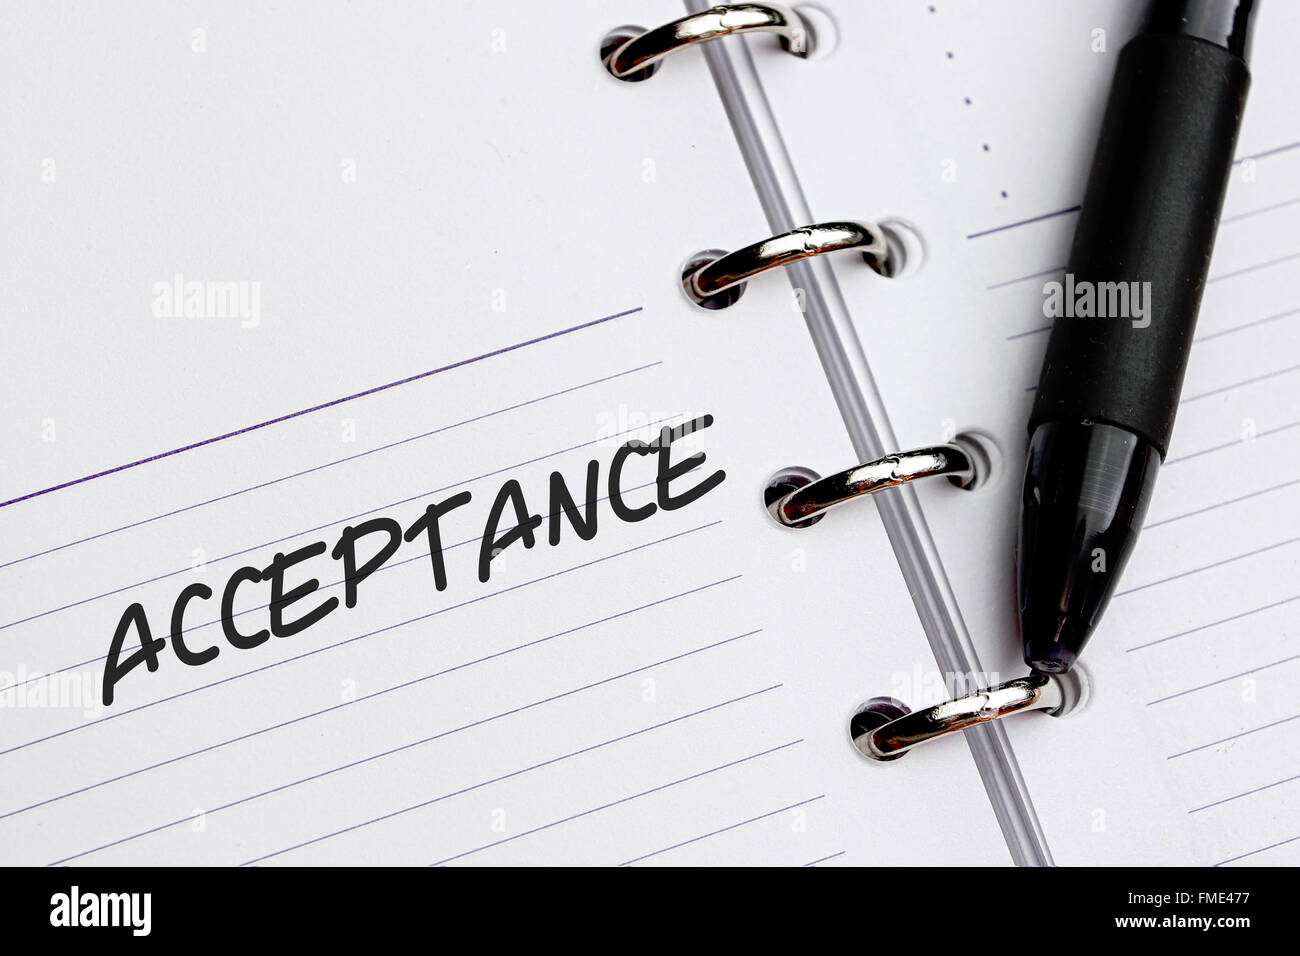 Acceptance word written on paper - Stock Image